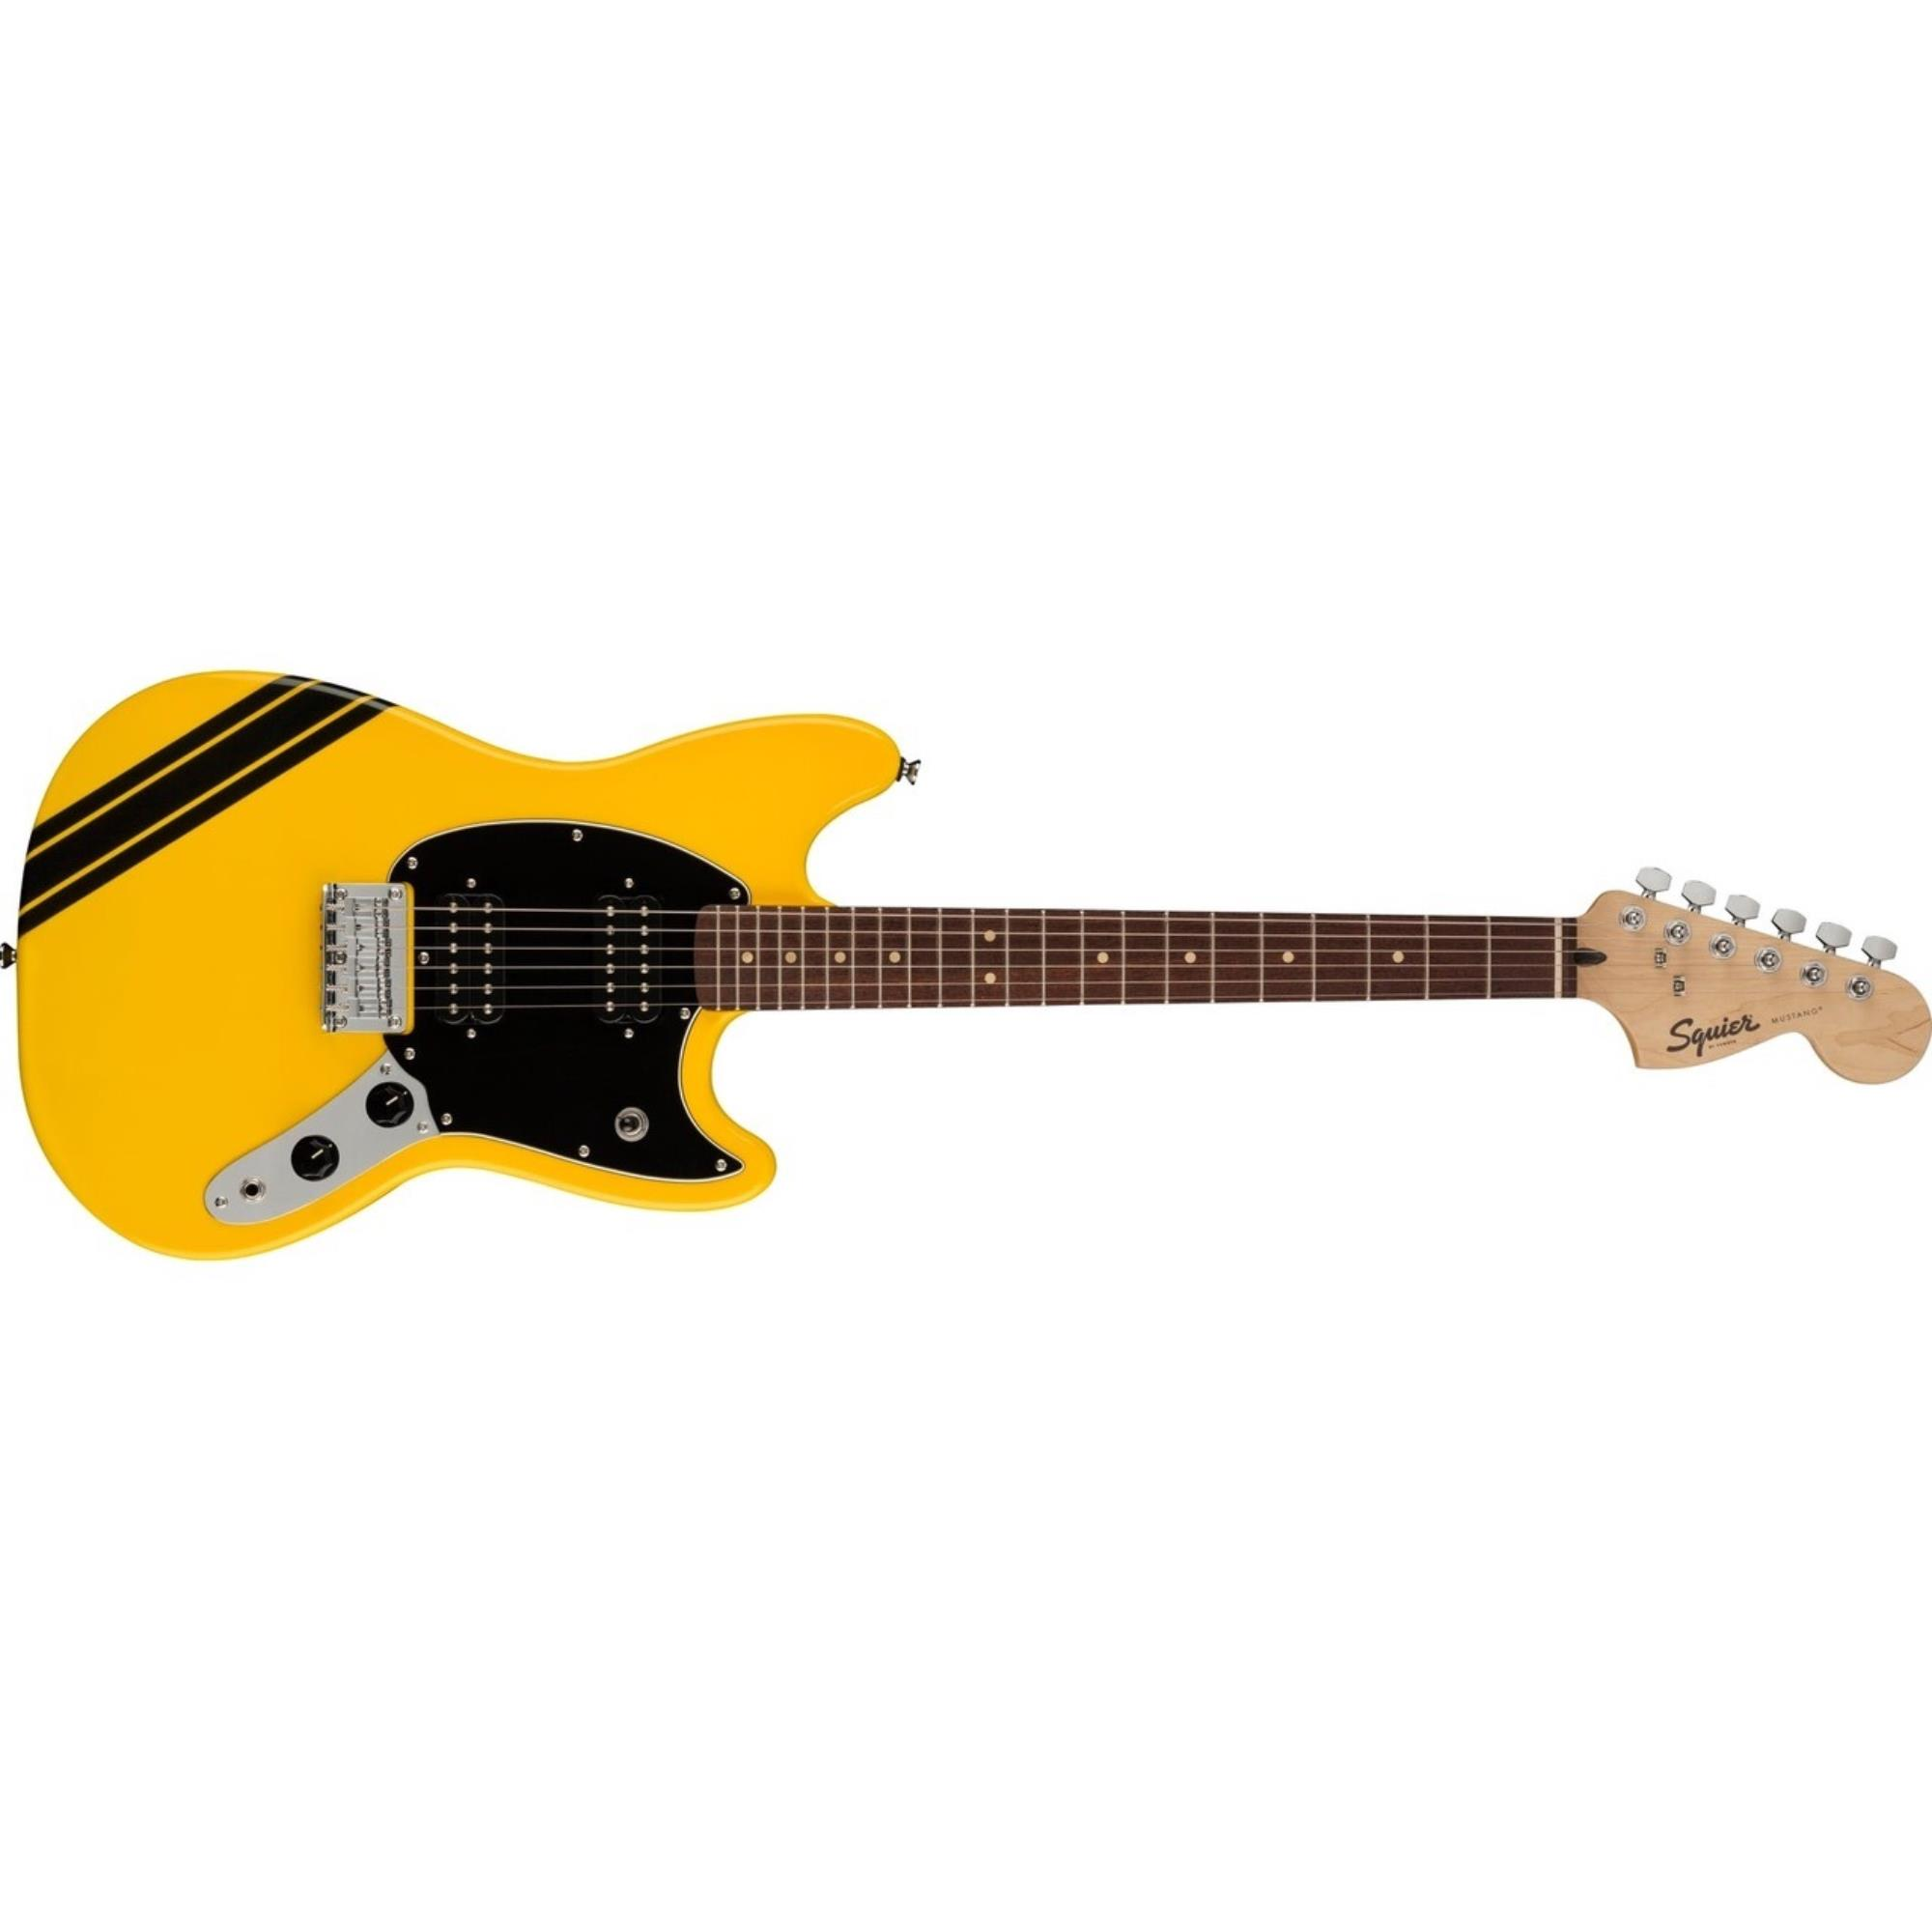 FENDER-FSR-Bullet-Competition-Mustang-HH-Graffiti-Yellow-with-Black-Stripes-0371222574-sku-24734